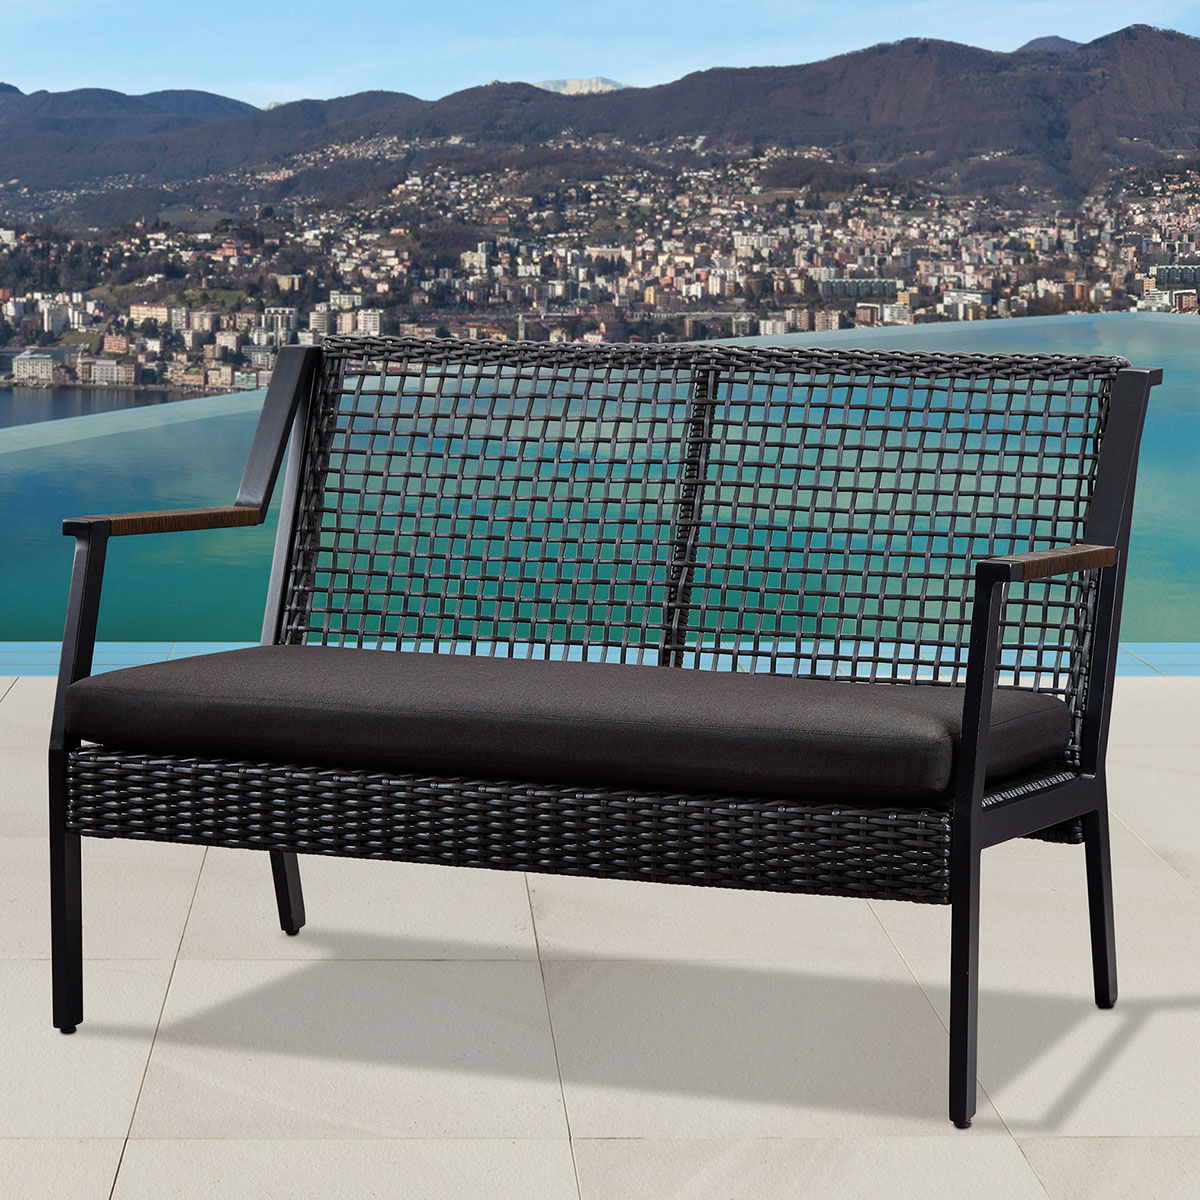 Super Calvin Loveseat In Black Resin Wicker Fabric By Real Flame Pdpeps Interior Chair Design Pdpepsorg